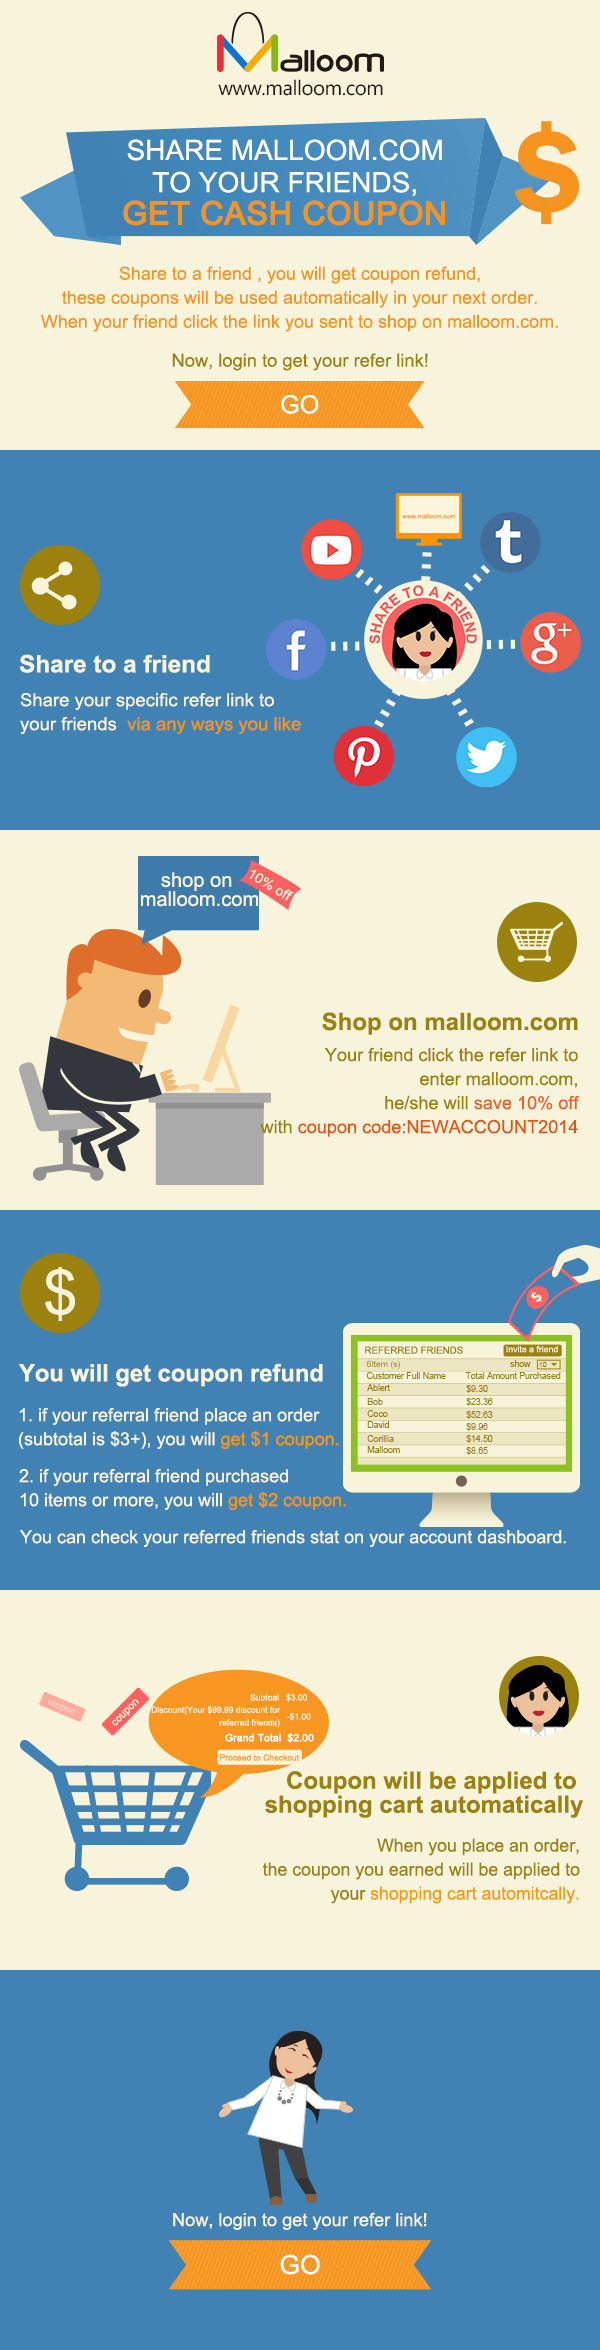 share malloom to your friends,get cash coupon.